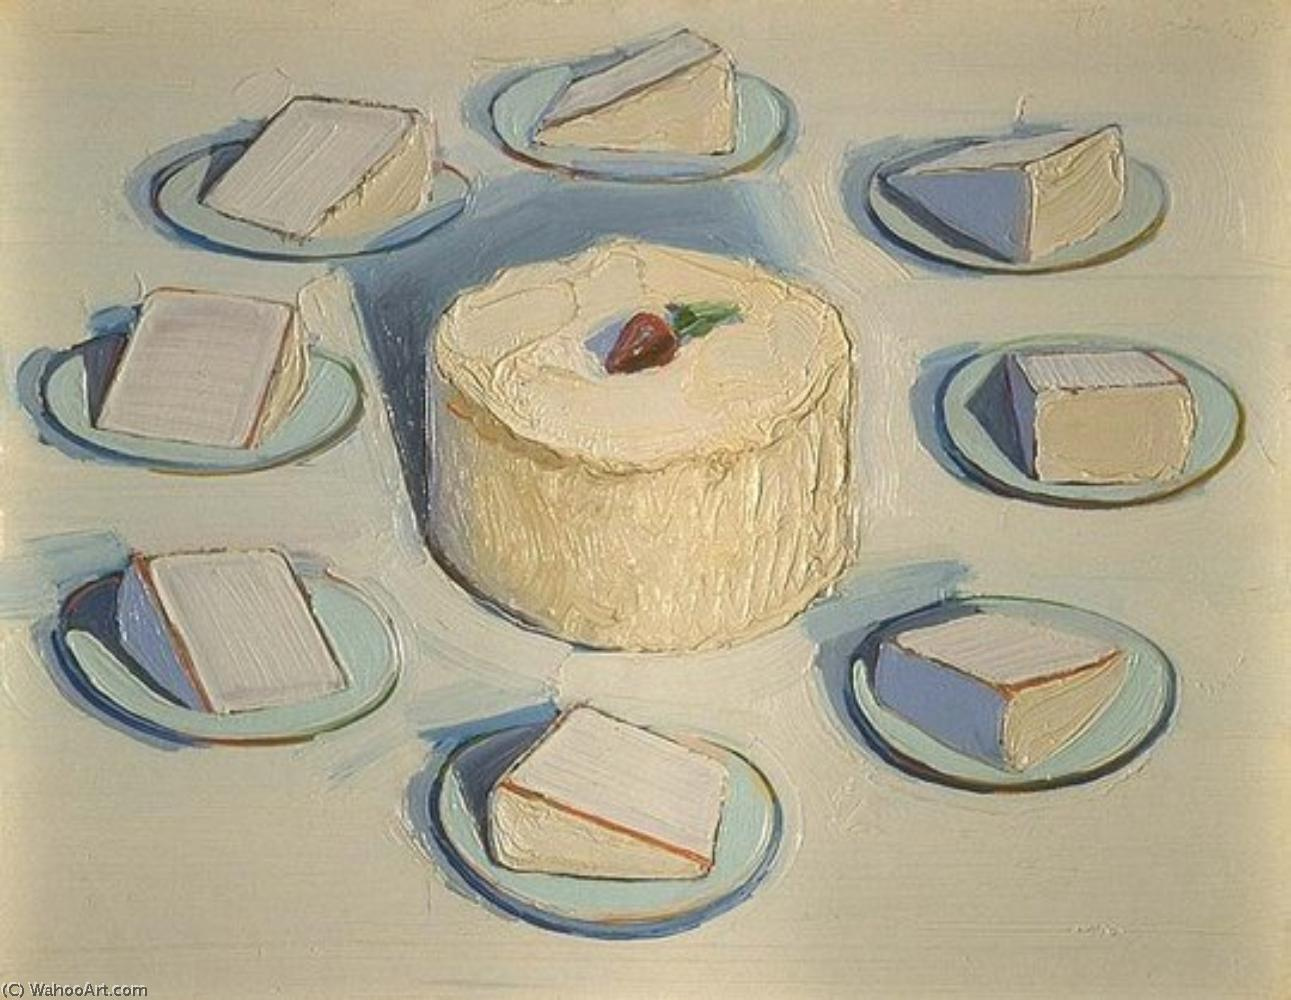 Cake painting by Wayne Thiebaud | Museum Quality Reproductions | WahooArt.com